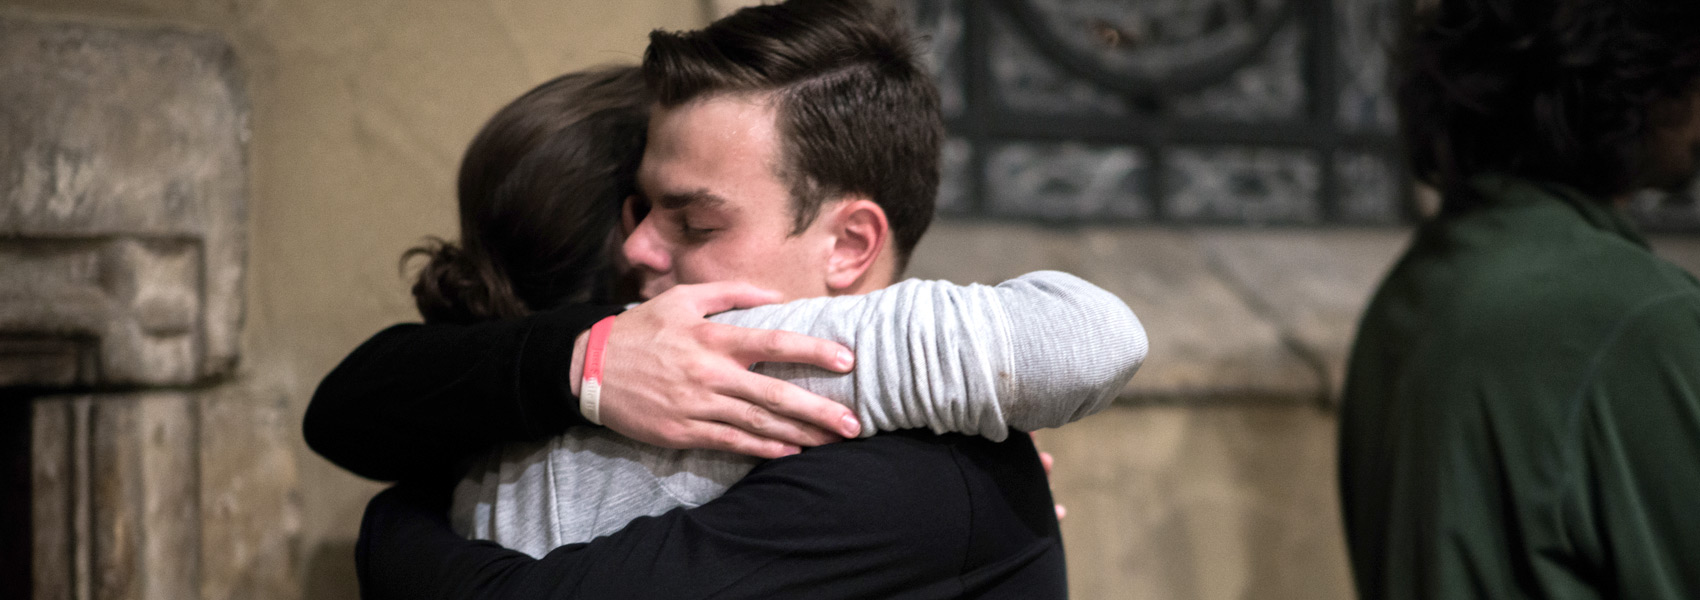 Two students hugging during a faith service inside of St. Joan of Arc chapel.